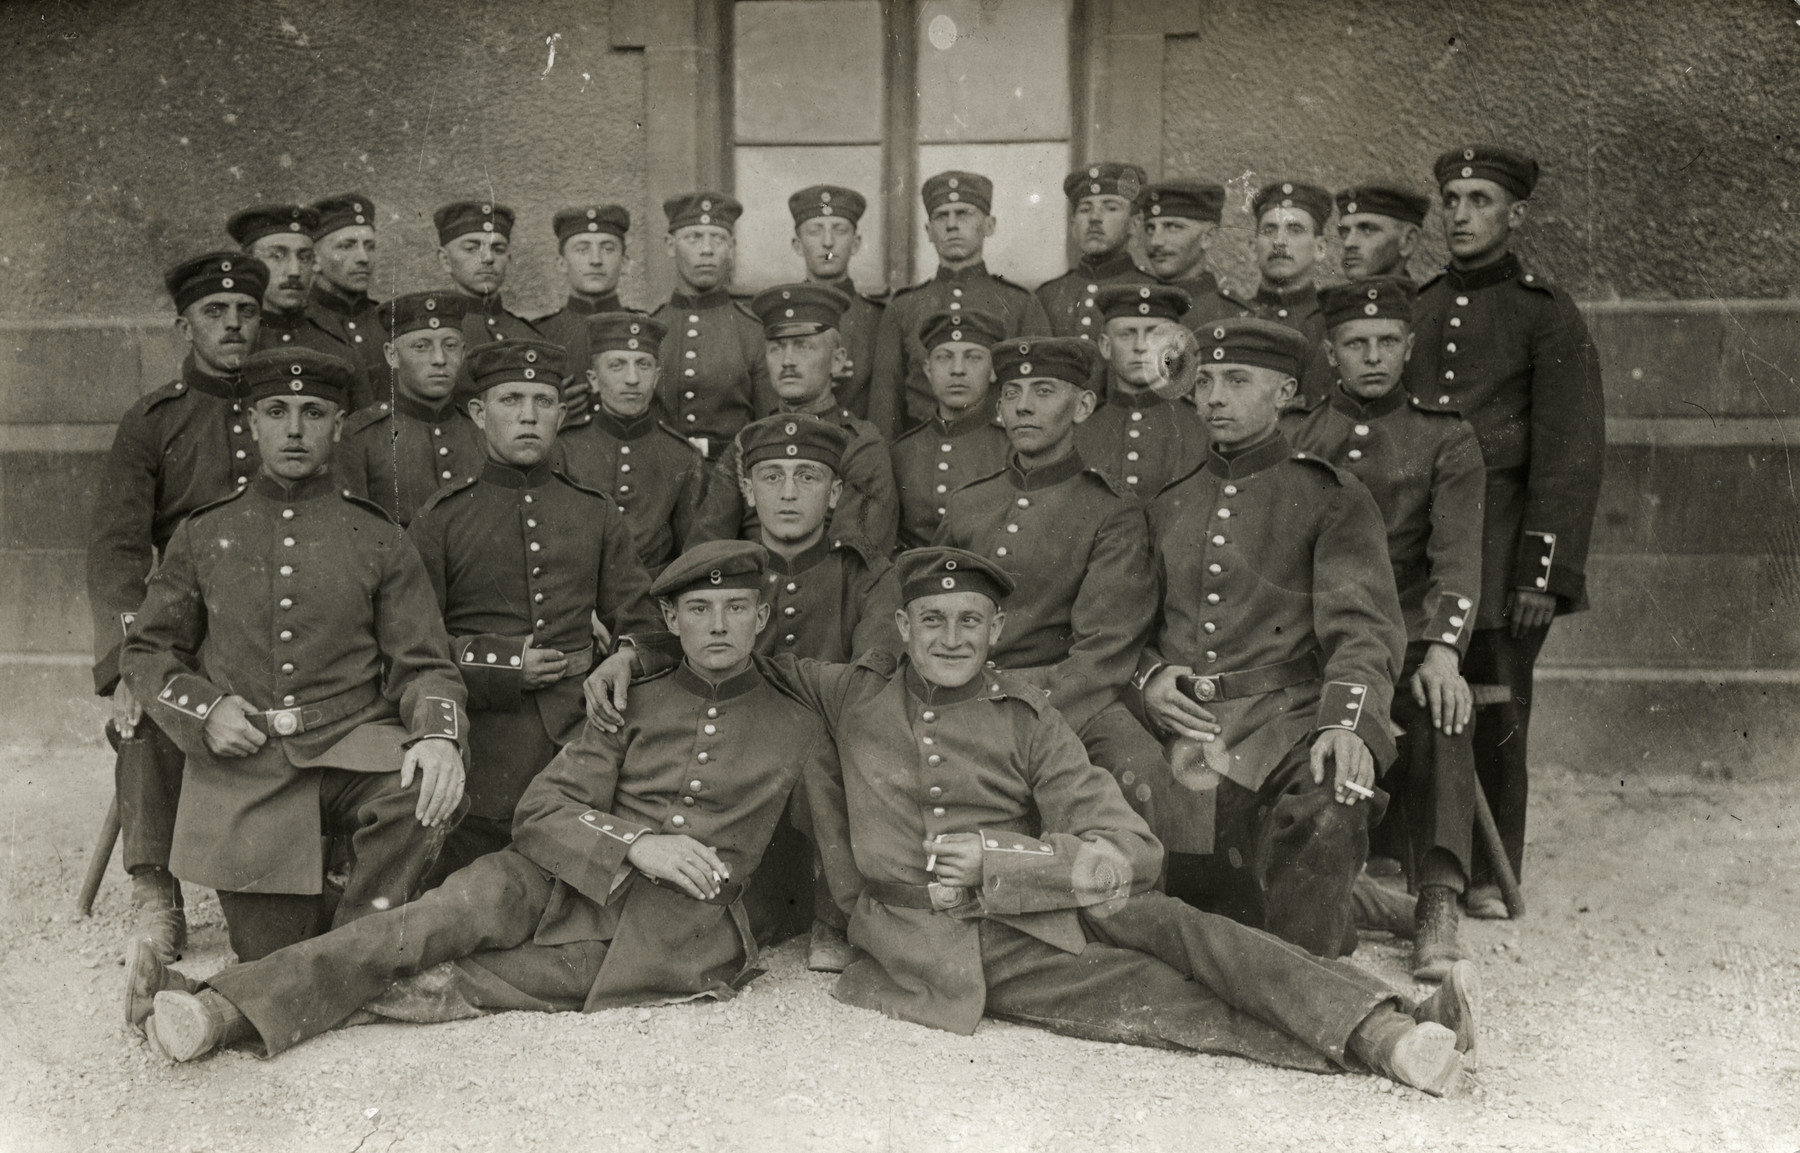 Group portrait of German soldiers.  Among those pictured is Matthieu Mueller from Alsace (a region claimed by both France and Germany).  He is pictured in the center of the second row from the bottom.